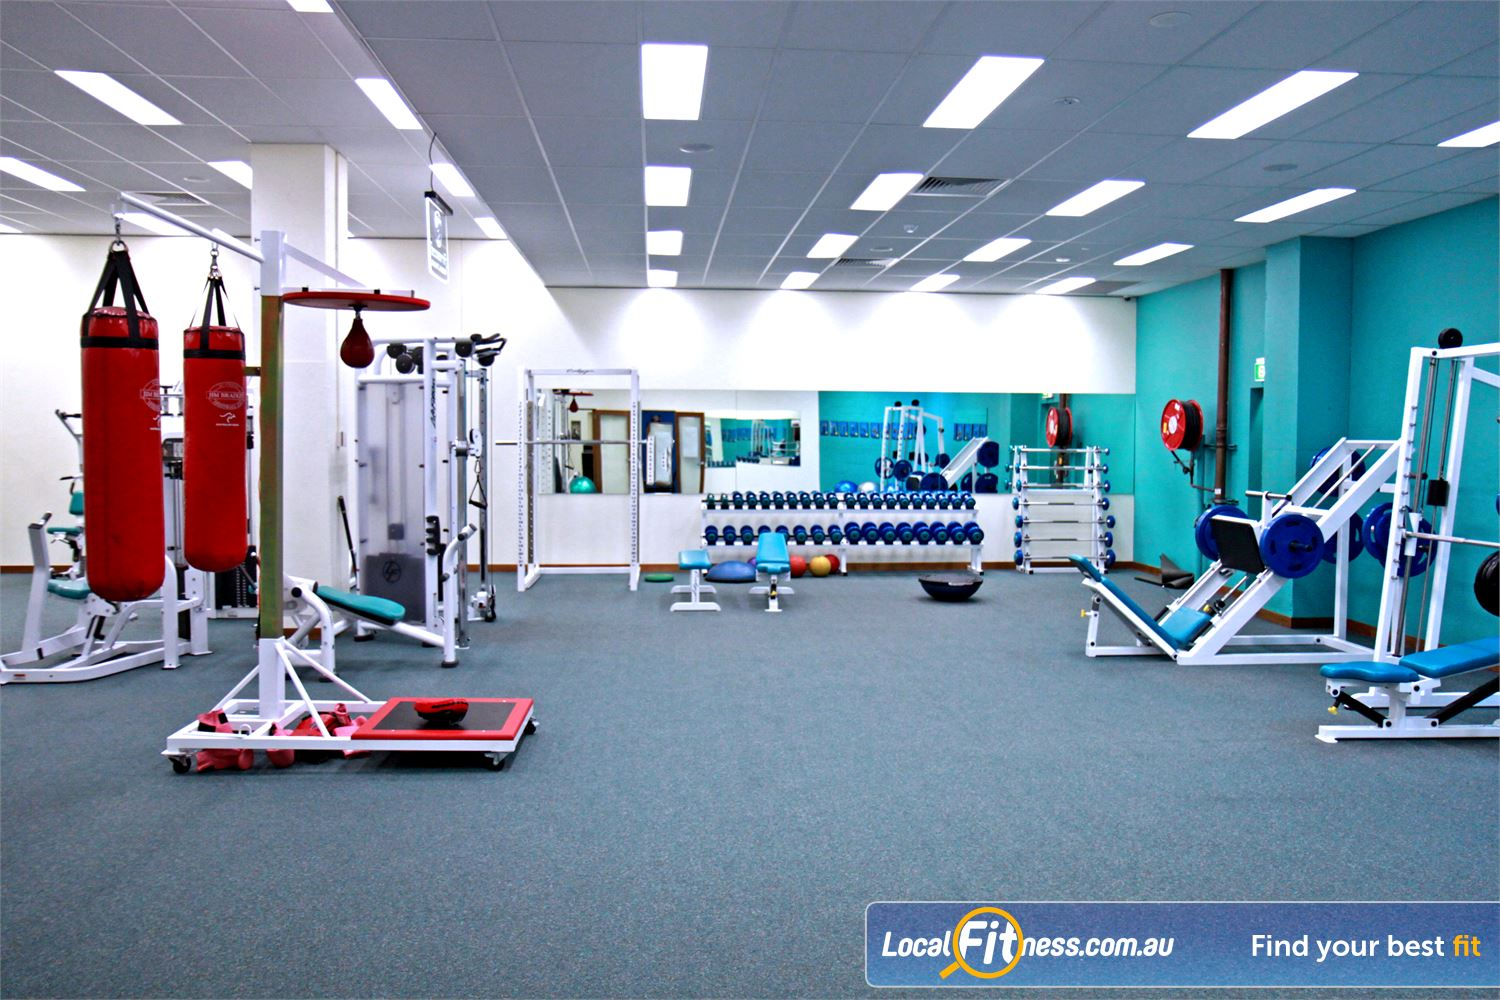 Fernwood Fitness Campbelltown Our women's strength training programs allow you to progress.